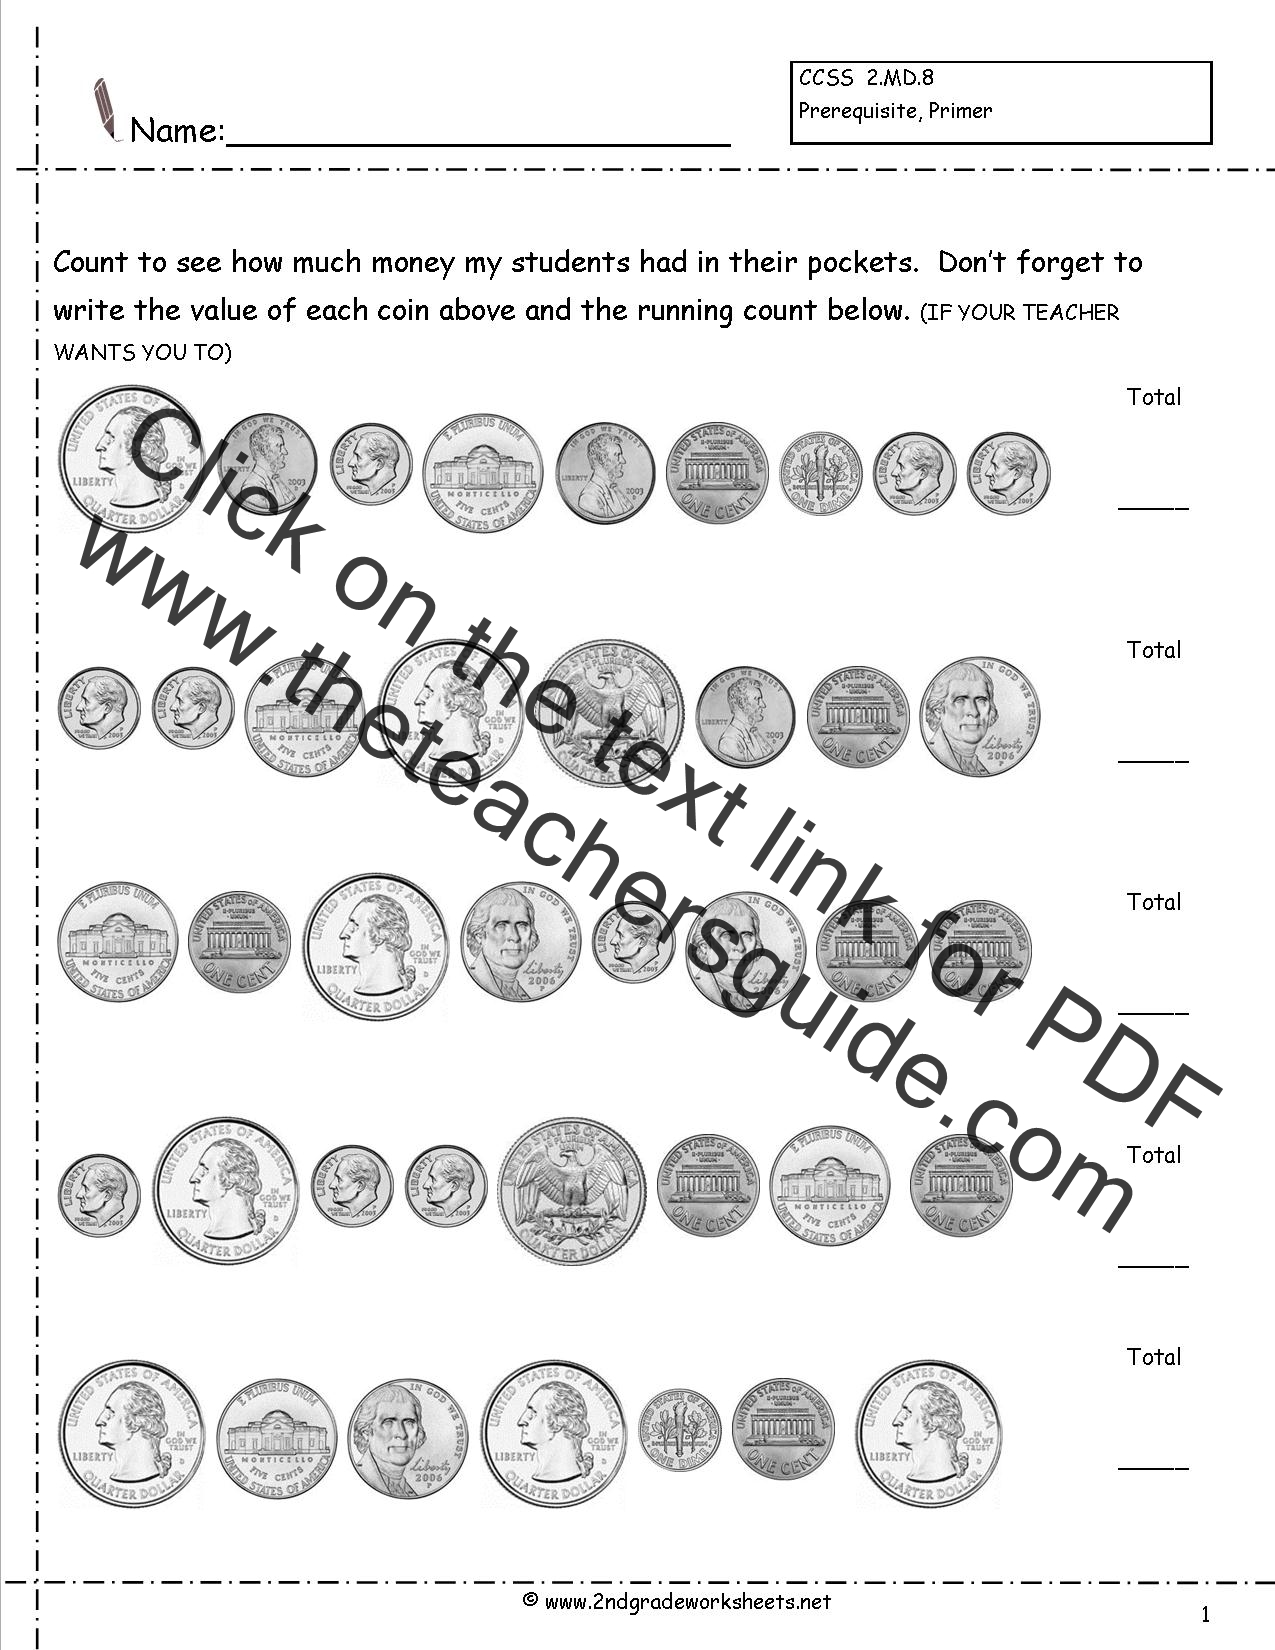 Worksheets Free Counting Money Worksheets counting coins and money worksheets printouts worksheets